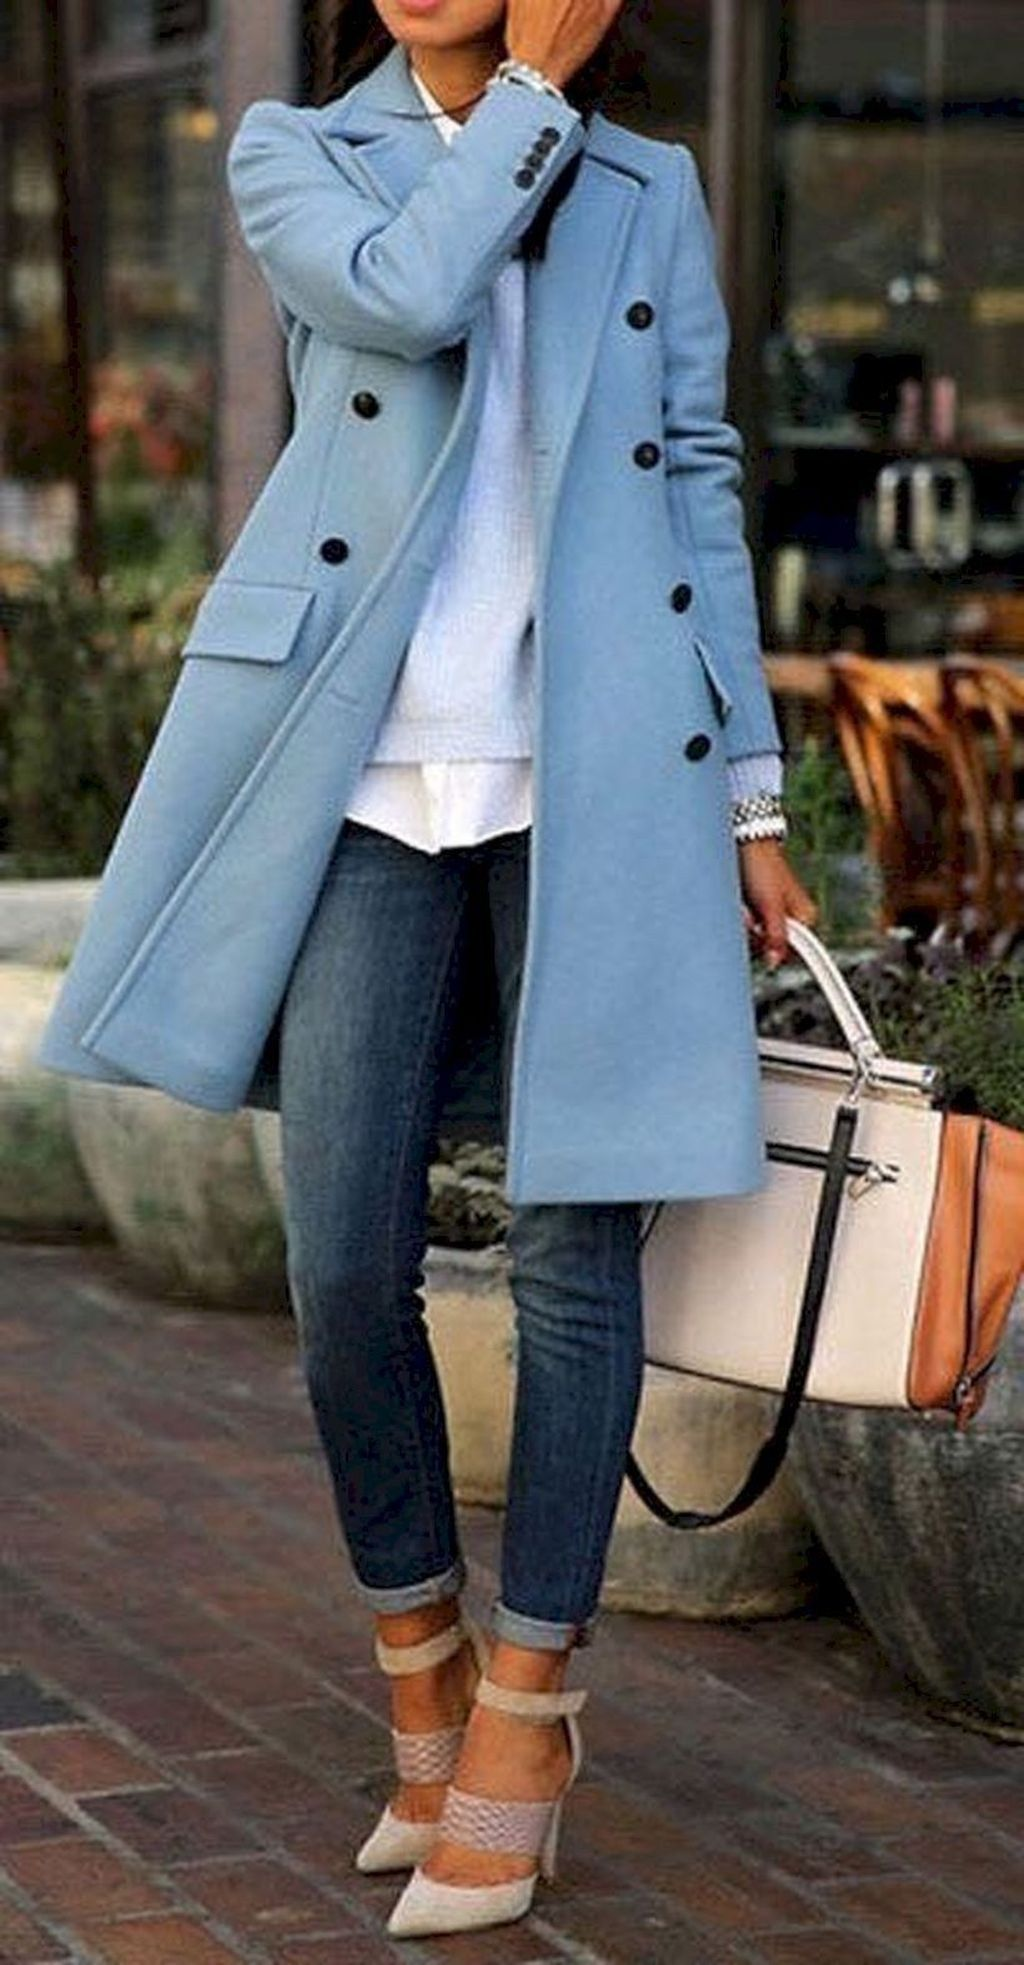 40 Very Comfy Fall Outfits Ideas To Stand Out From The Crowd #falloutfits